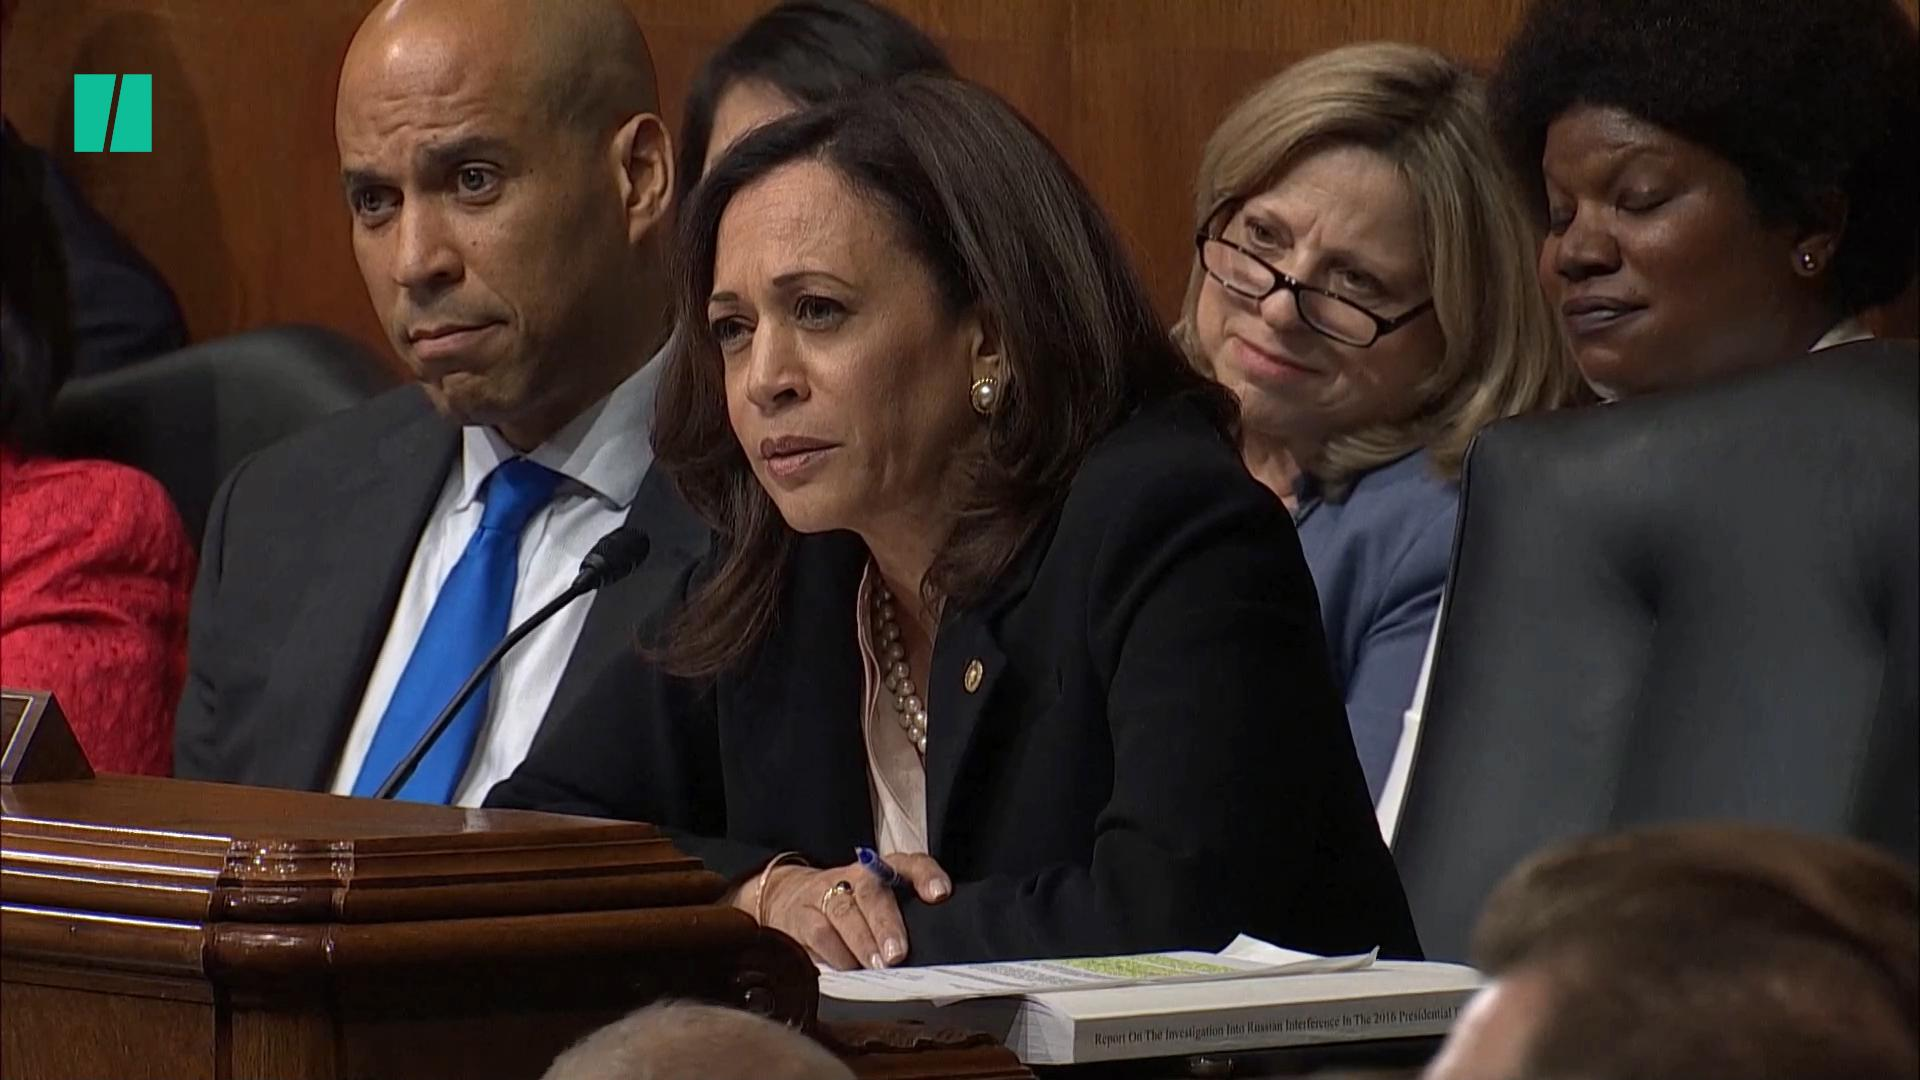 Kamala Harris Fires Back At Donald Trump For Calling Her 'Nasty'